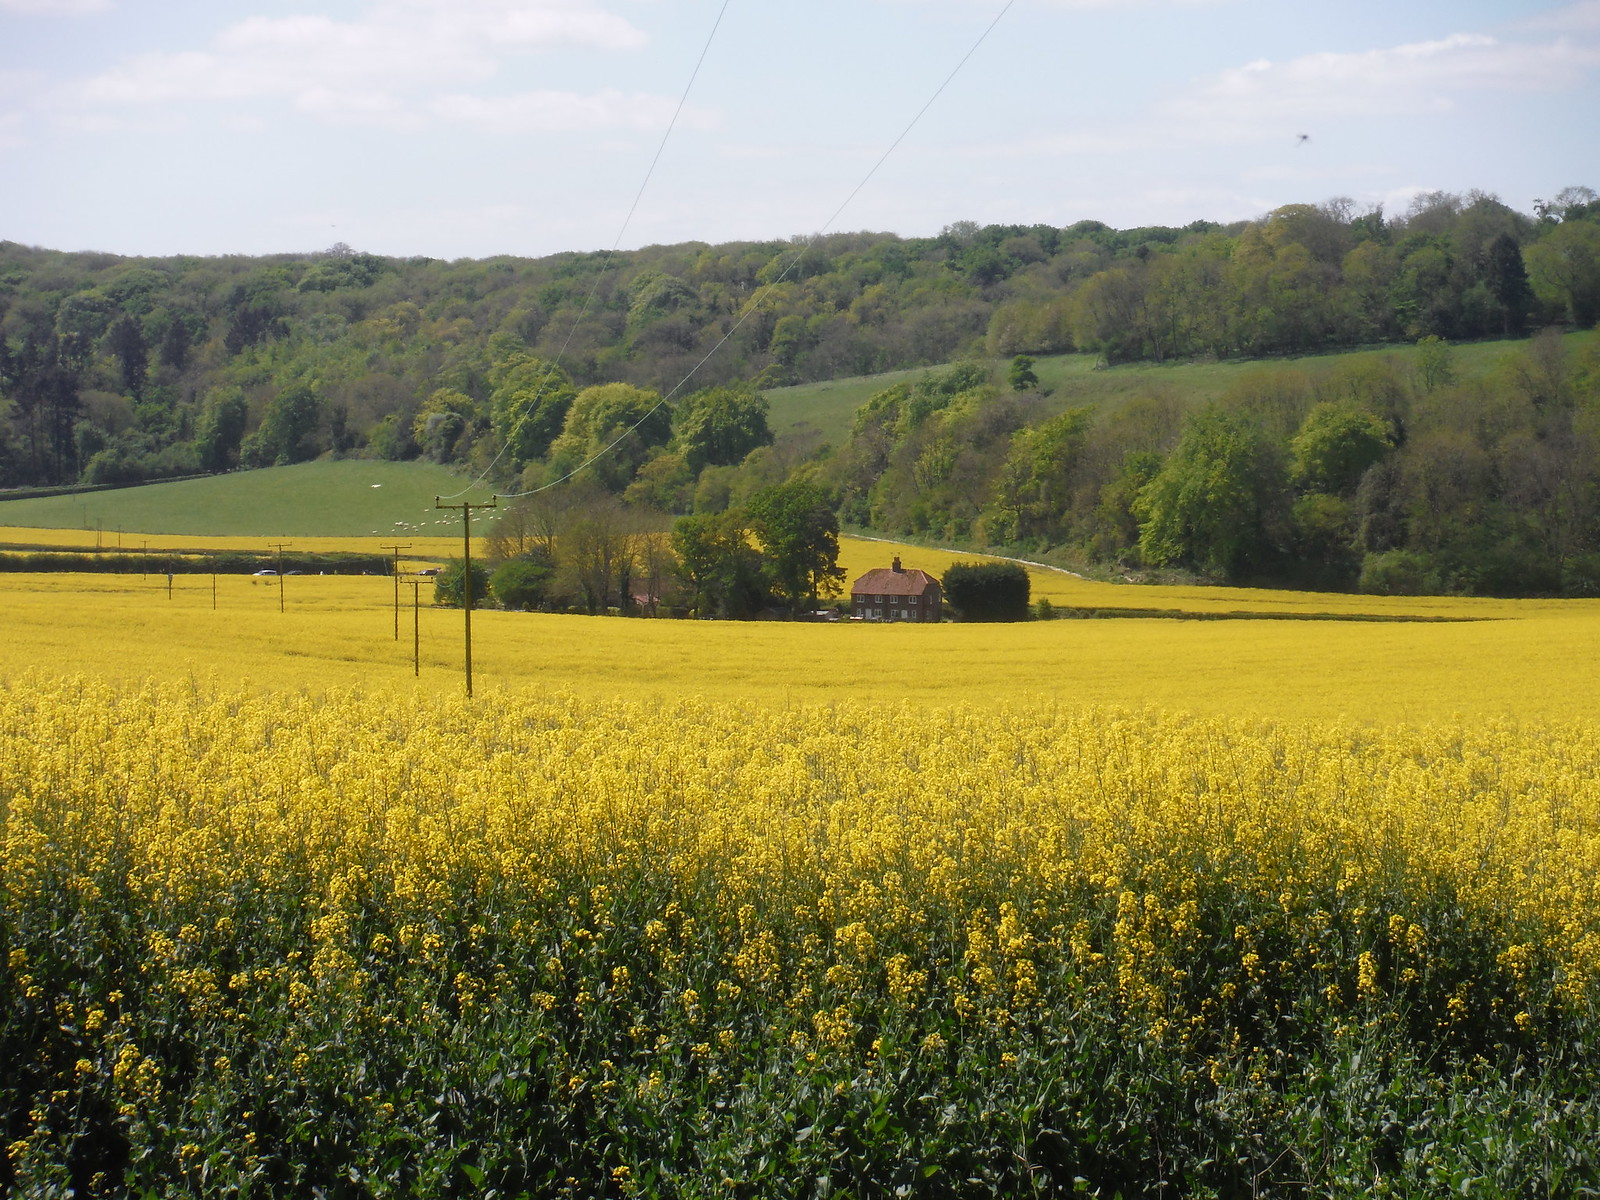 Farm House in Rape Oilseed Field, from Locksash Lane SWC Walk Rowlands Castle Circular